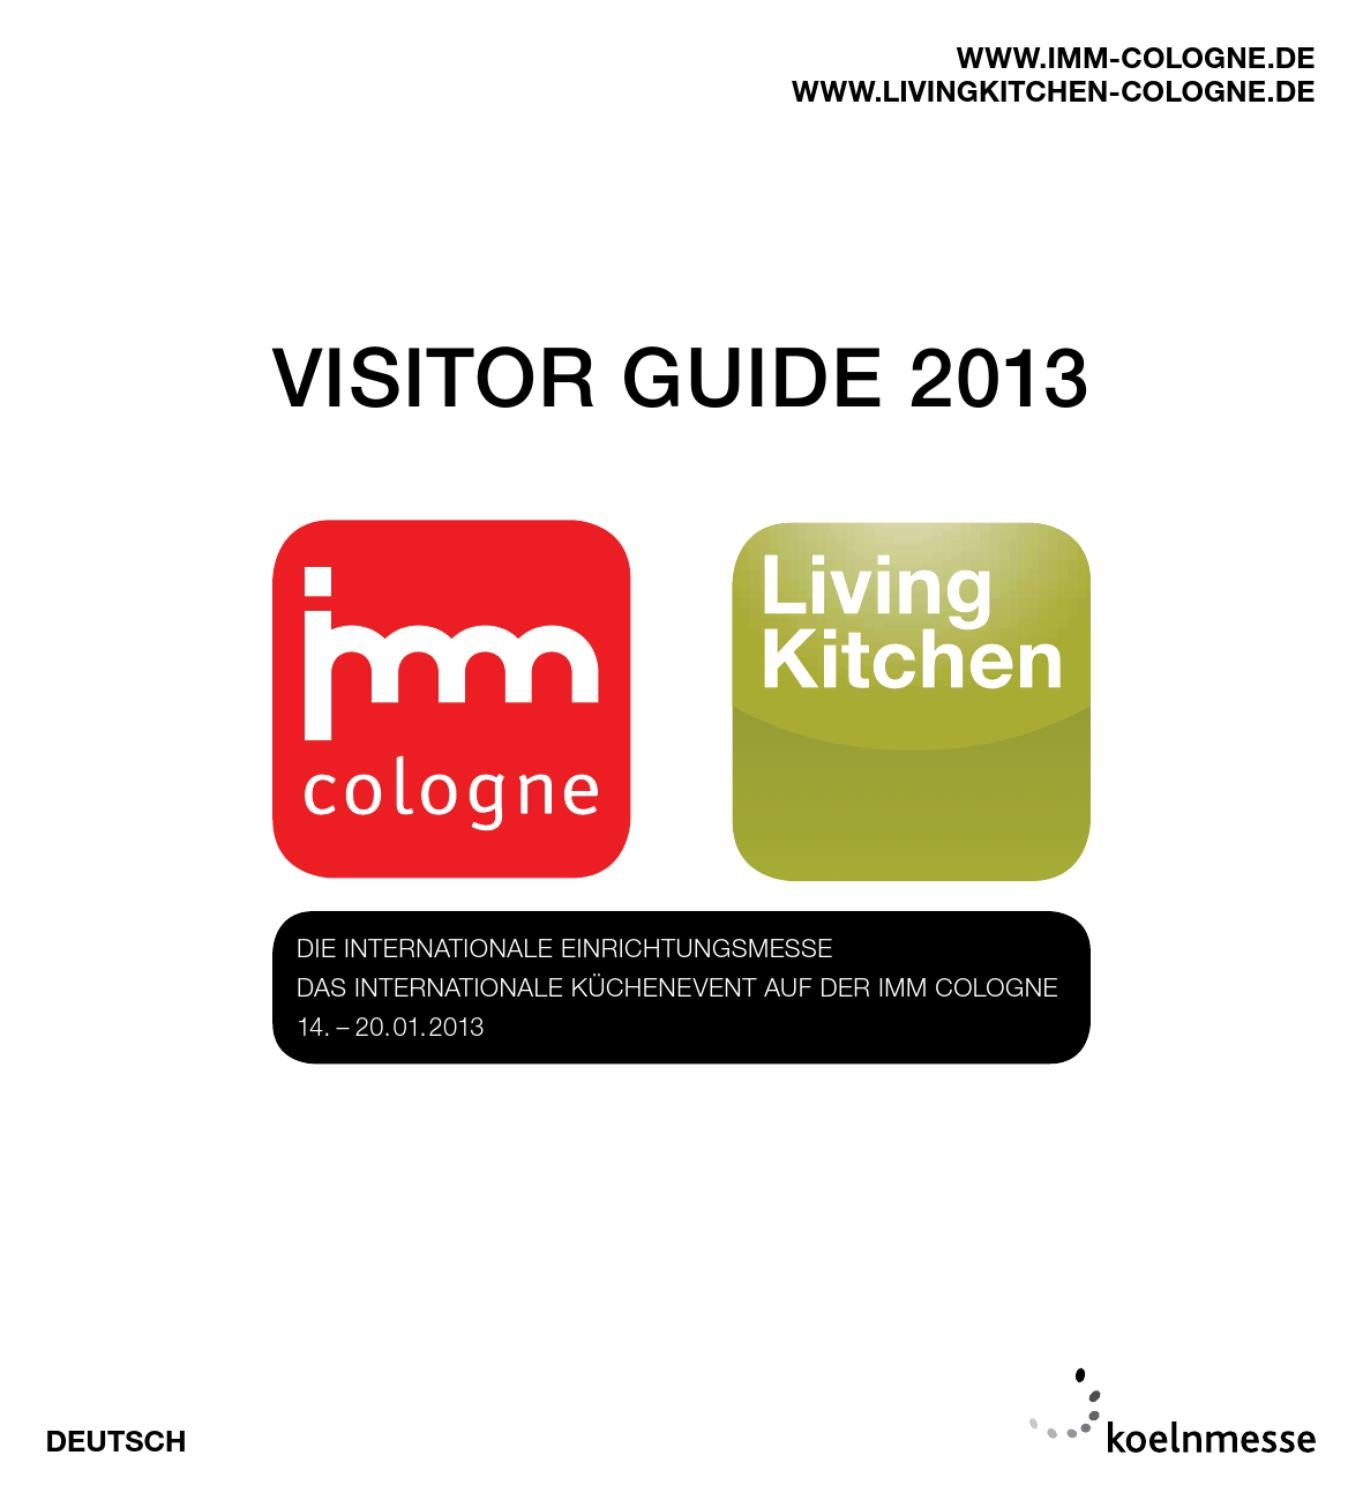 Woody-möbel Gmbh & Co. Kg Visitor Guide Imm Cologne Livingkitchen 2013